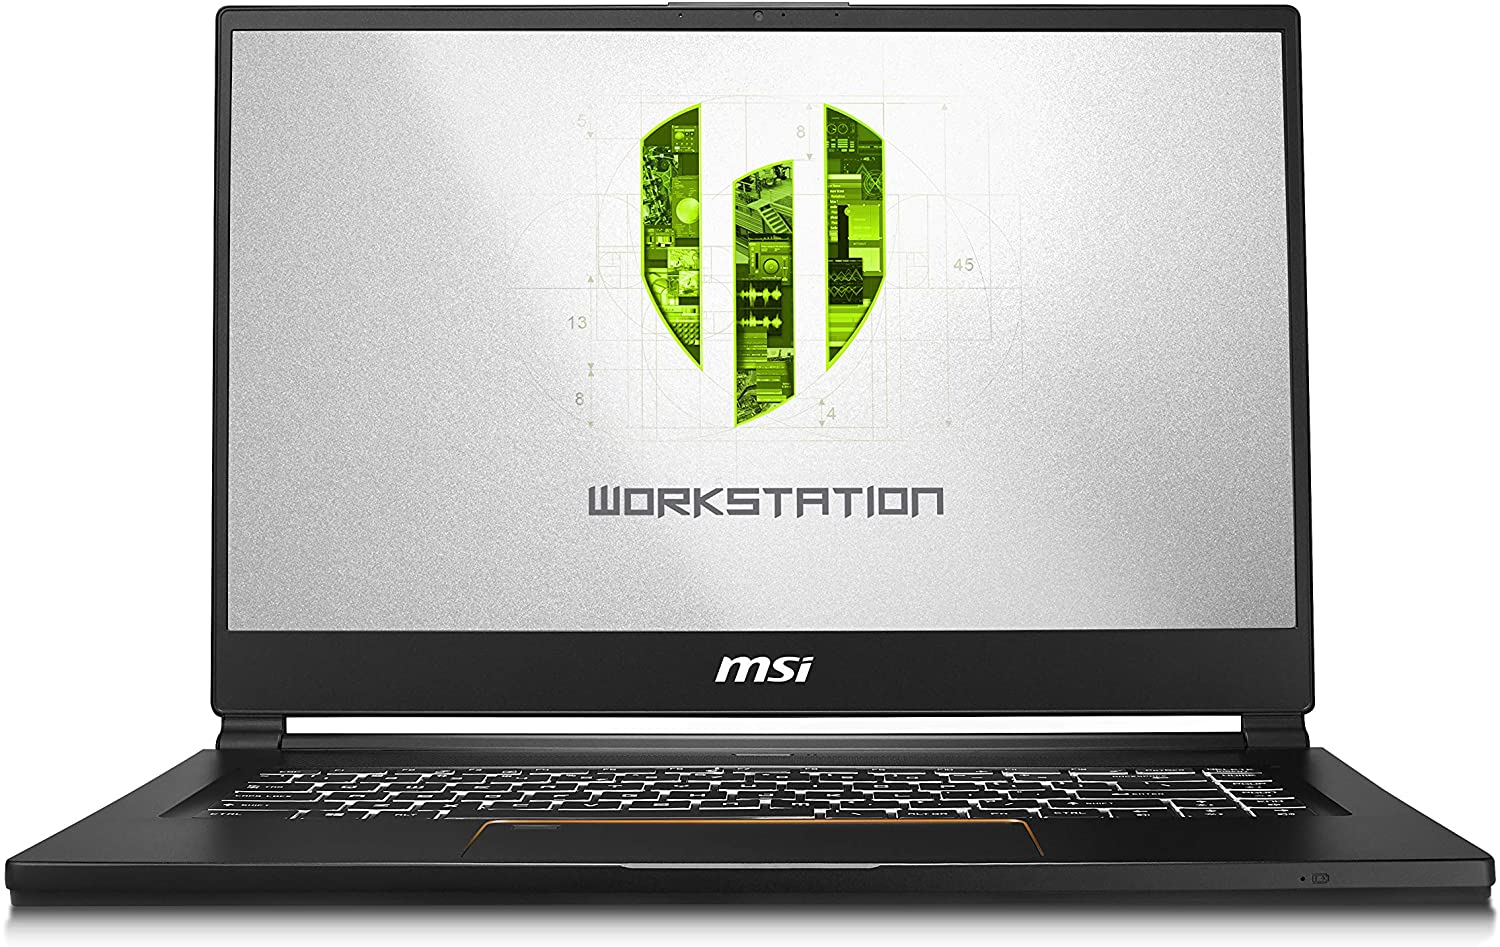 "MSI WS65 9TL-686 15.6"" FHD Thin and Light Mobile Workstation Intel Core i7-9750H Quadro RTX 4000 32GB 512G NVMe SSD Win10 Pro TPM2.0 TB3 Fingerprint"